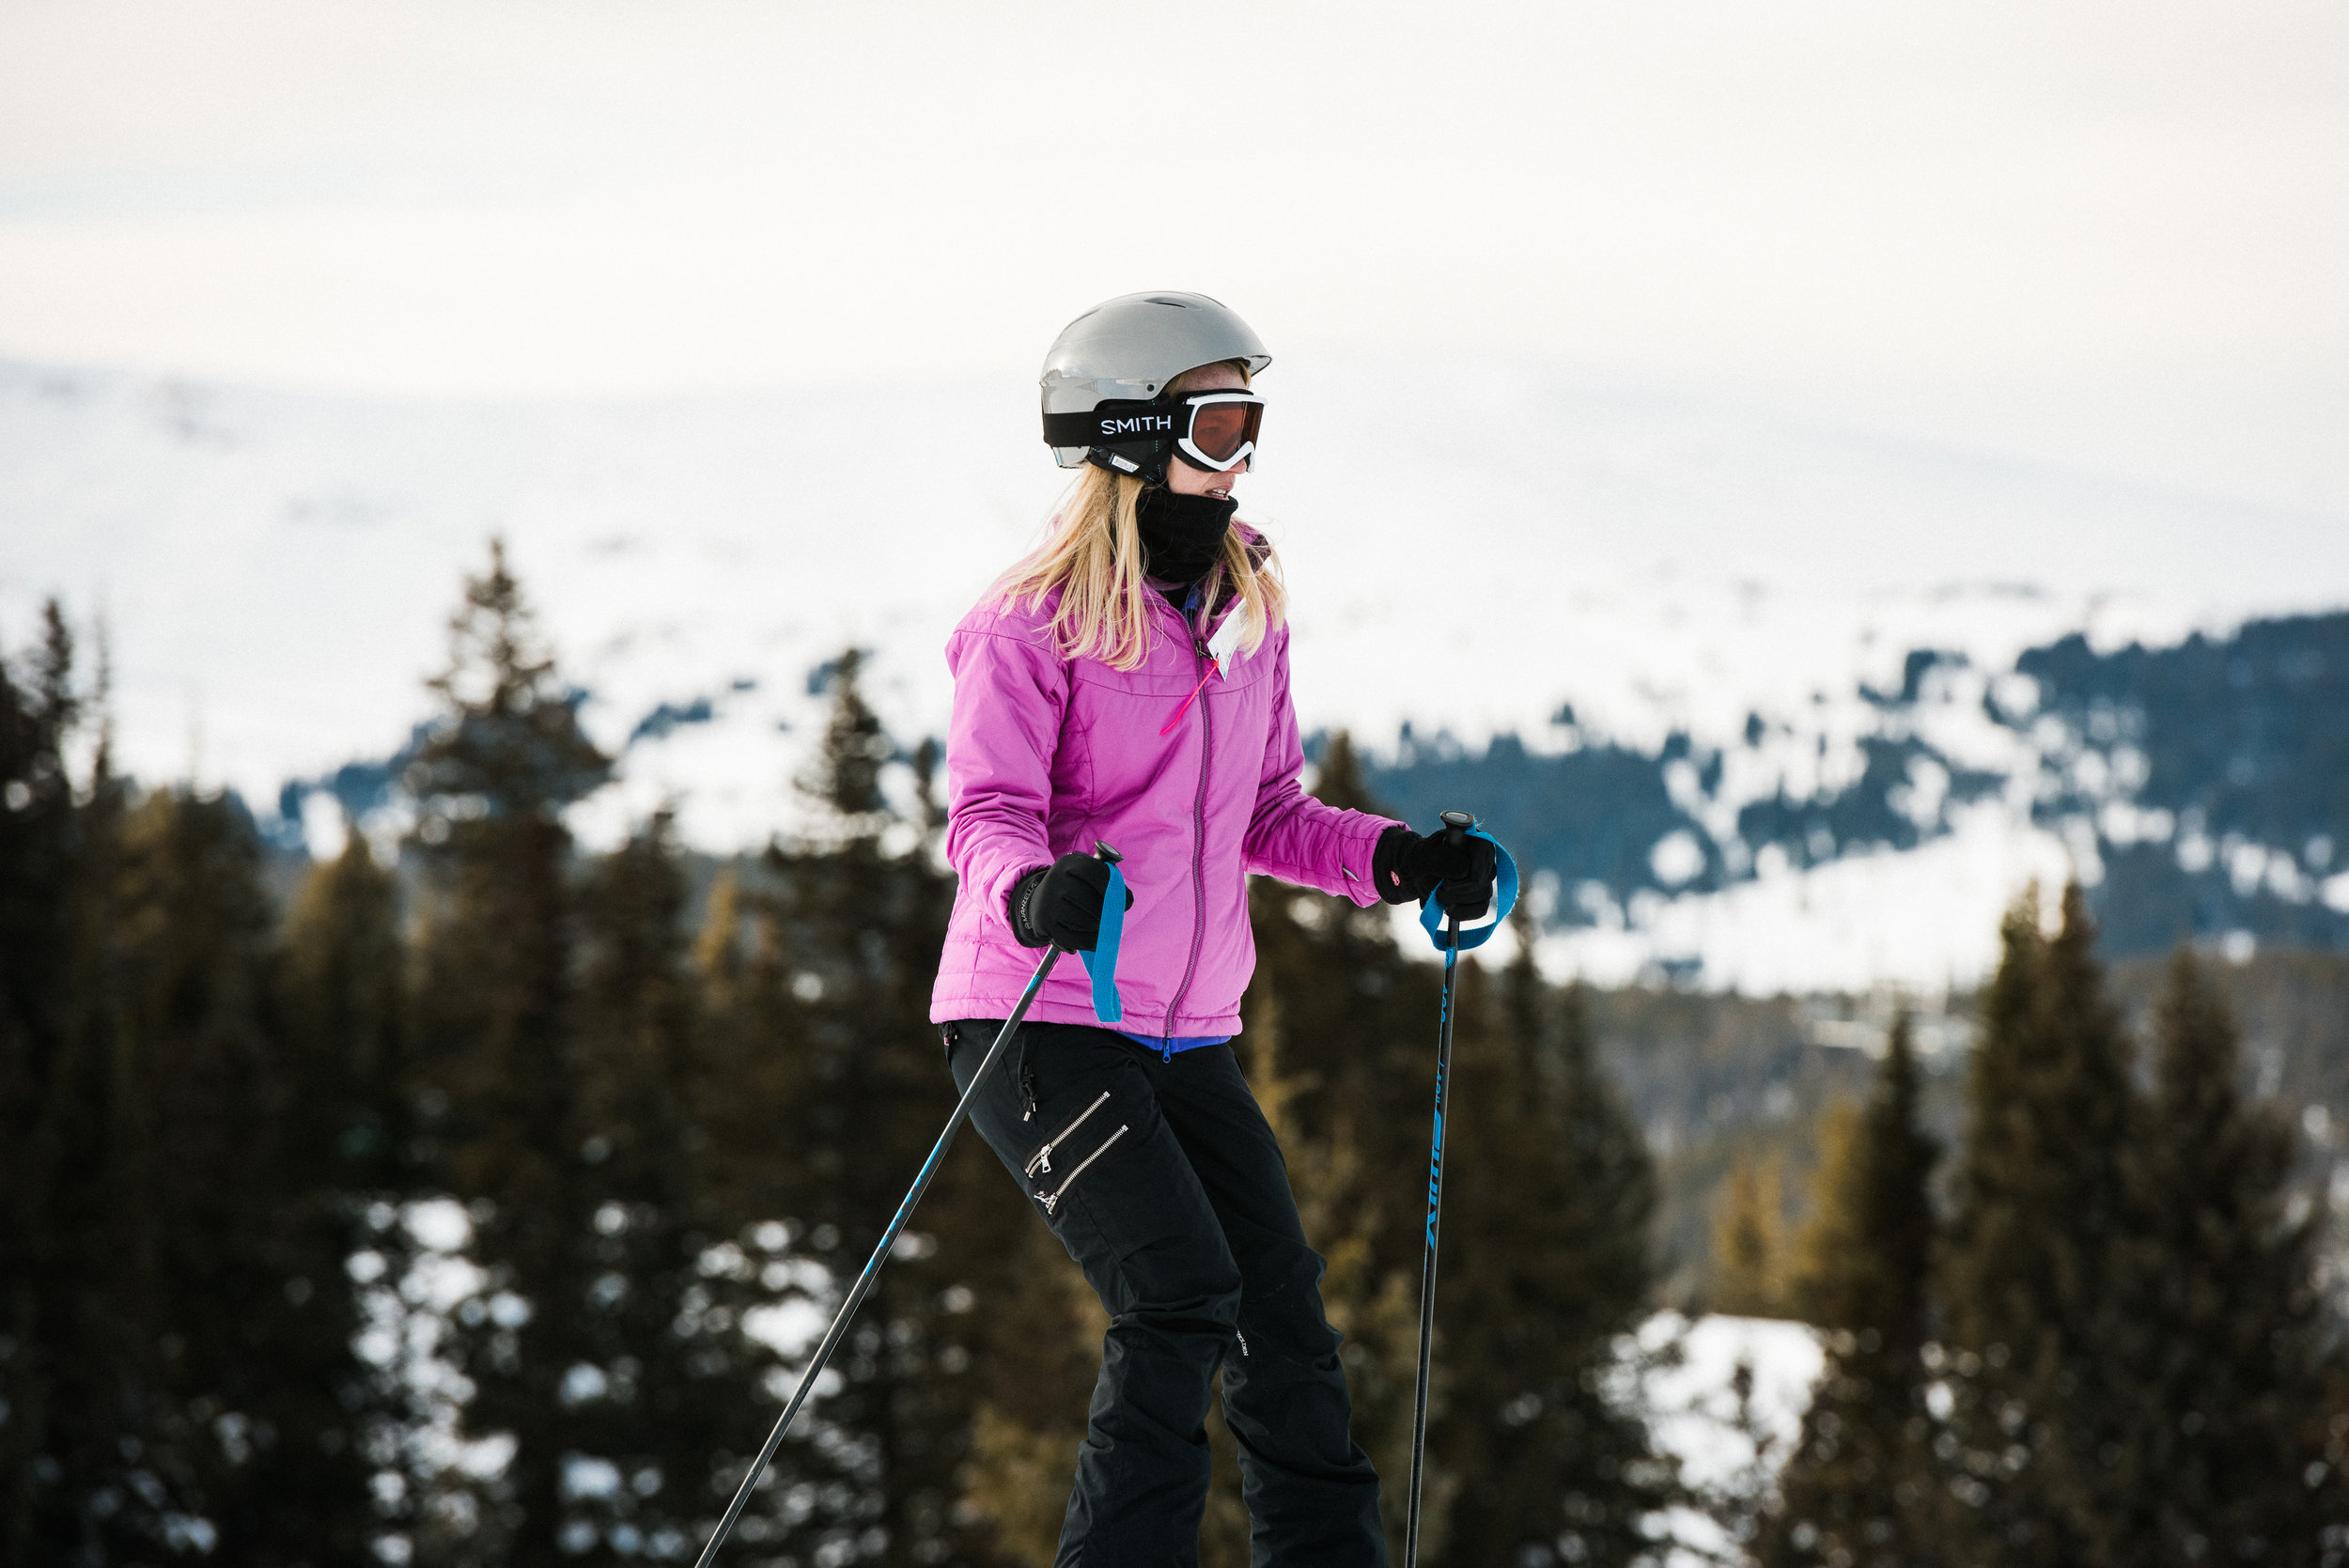 TaraShupe_Outdoor_Photographer_Loweprobags_Colorado_Copper_Mountains_Ski_69.jpg